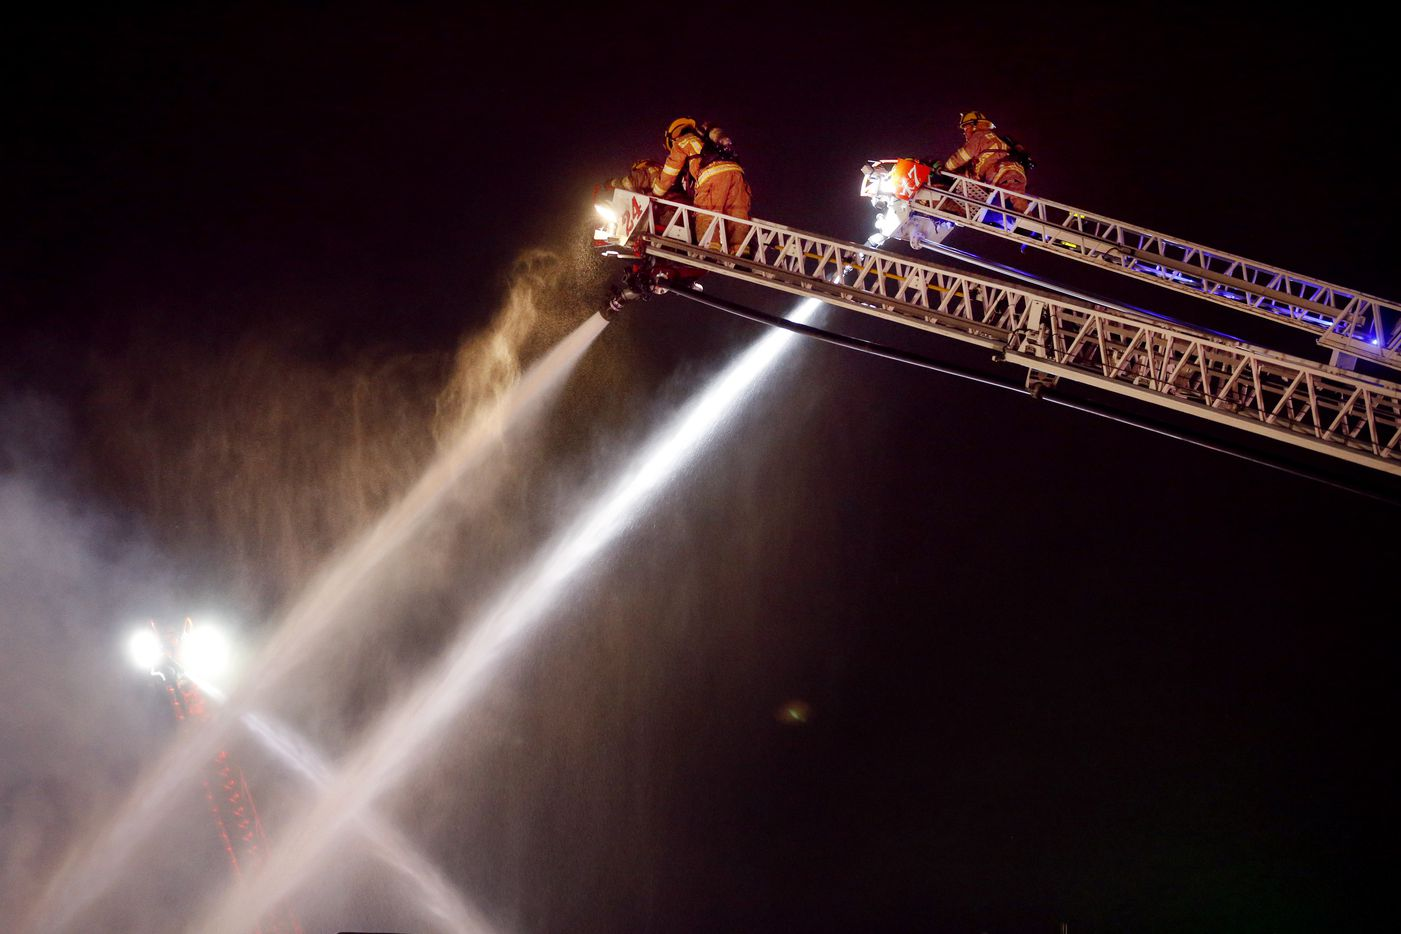 Dallas firefighters using aerial ladders battle a four-alarm business fire in the Fair Park area, just south of Interstate 30 near the Austin Street Shelter, Wednesday, November 13, 2019. Smoke was seen rolling across Interstate 30 from the ORS Food Company. (Tom Fox/The Dallas Morning News)